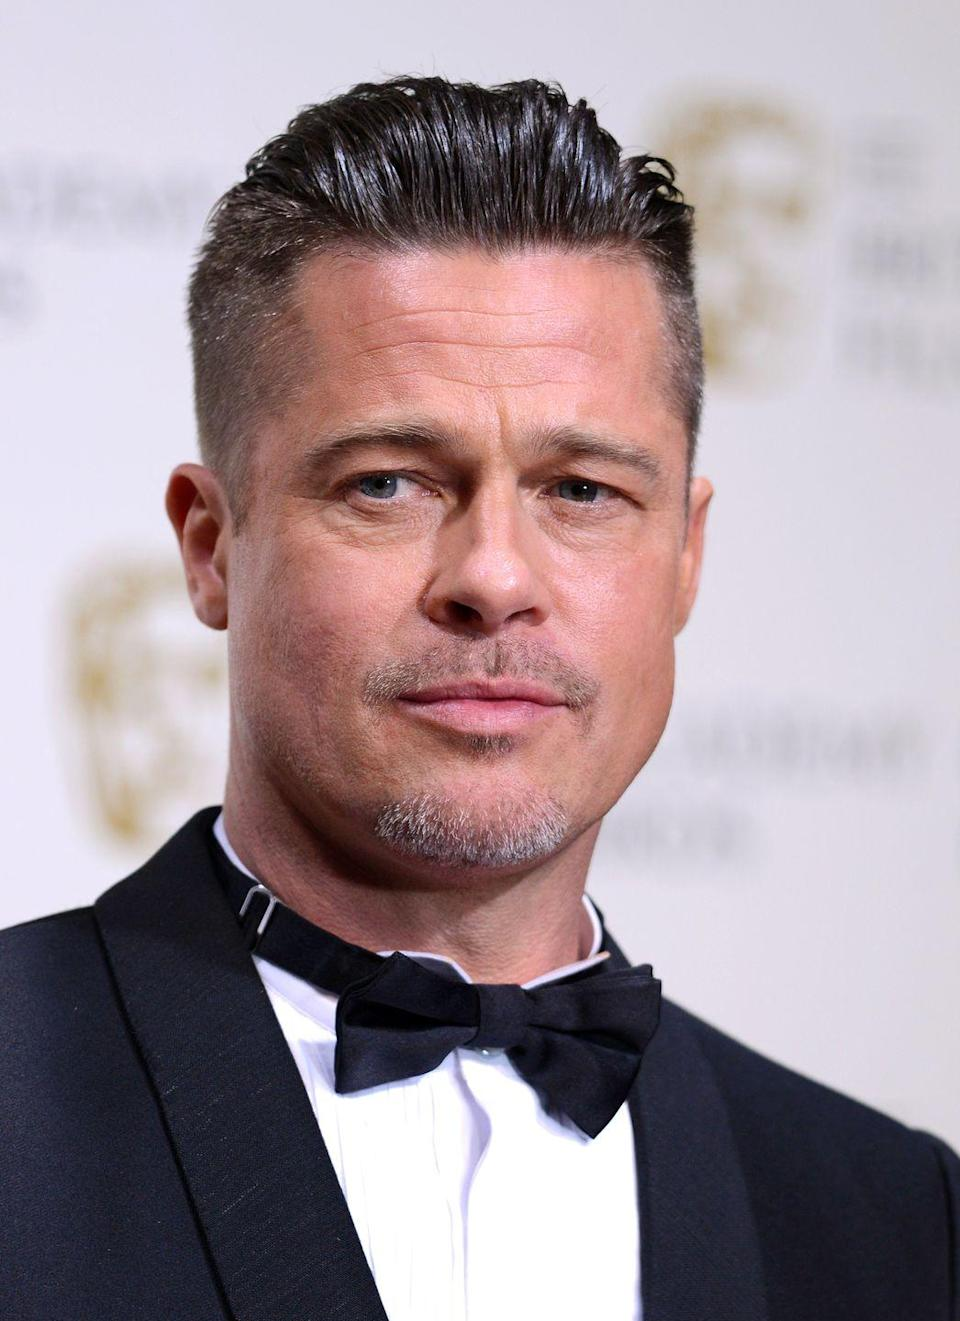 <p>A variation of this hairstyle has defined the men's hair zeitgeist for years now. Long on the top, short on the sides, it's extremely manageable (and made popular by almost every professional soccer player known to man), but for some reason, it just doesn't seem to fly when it comes to Brad.</p>